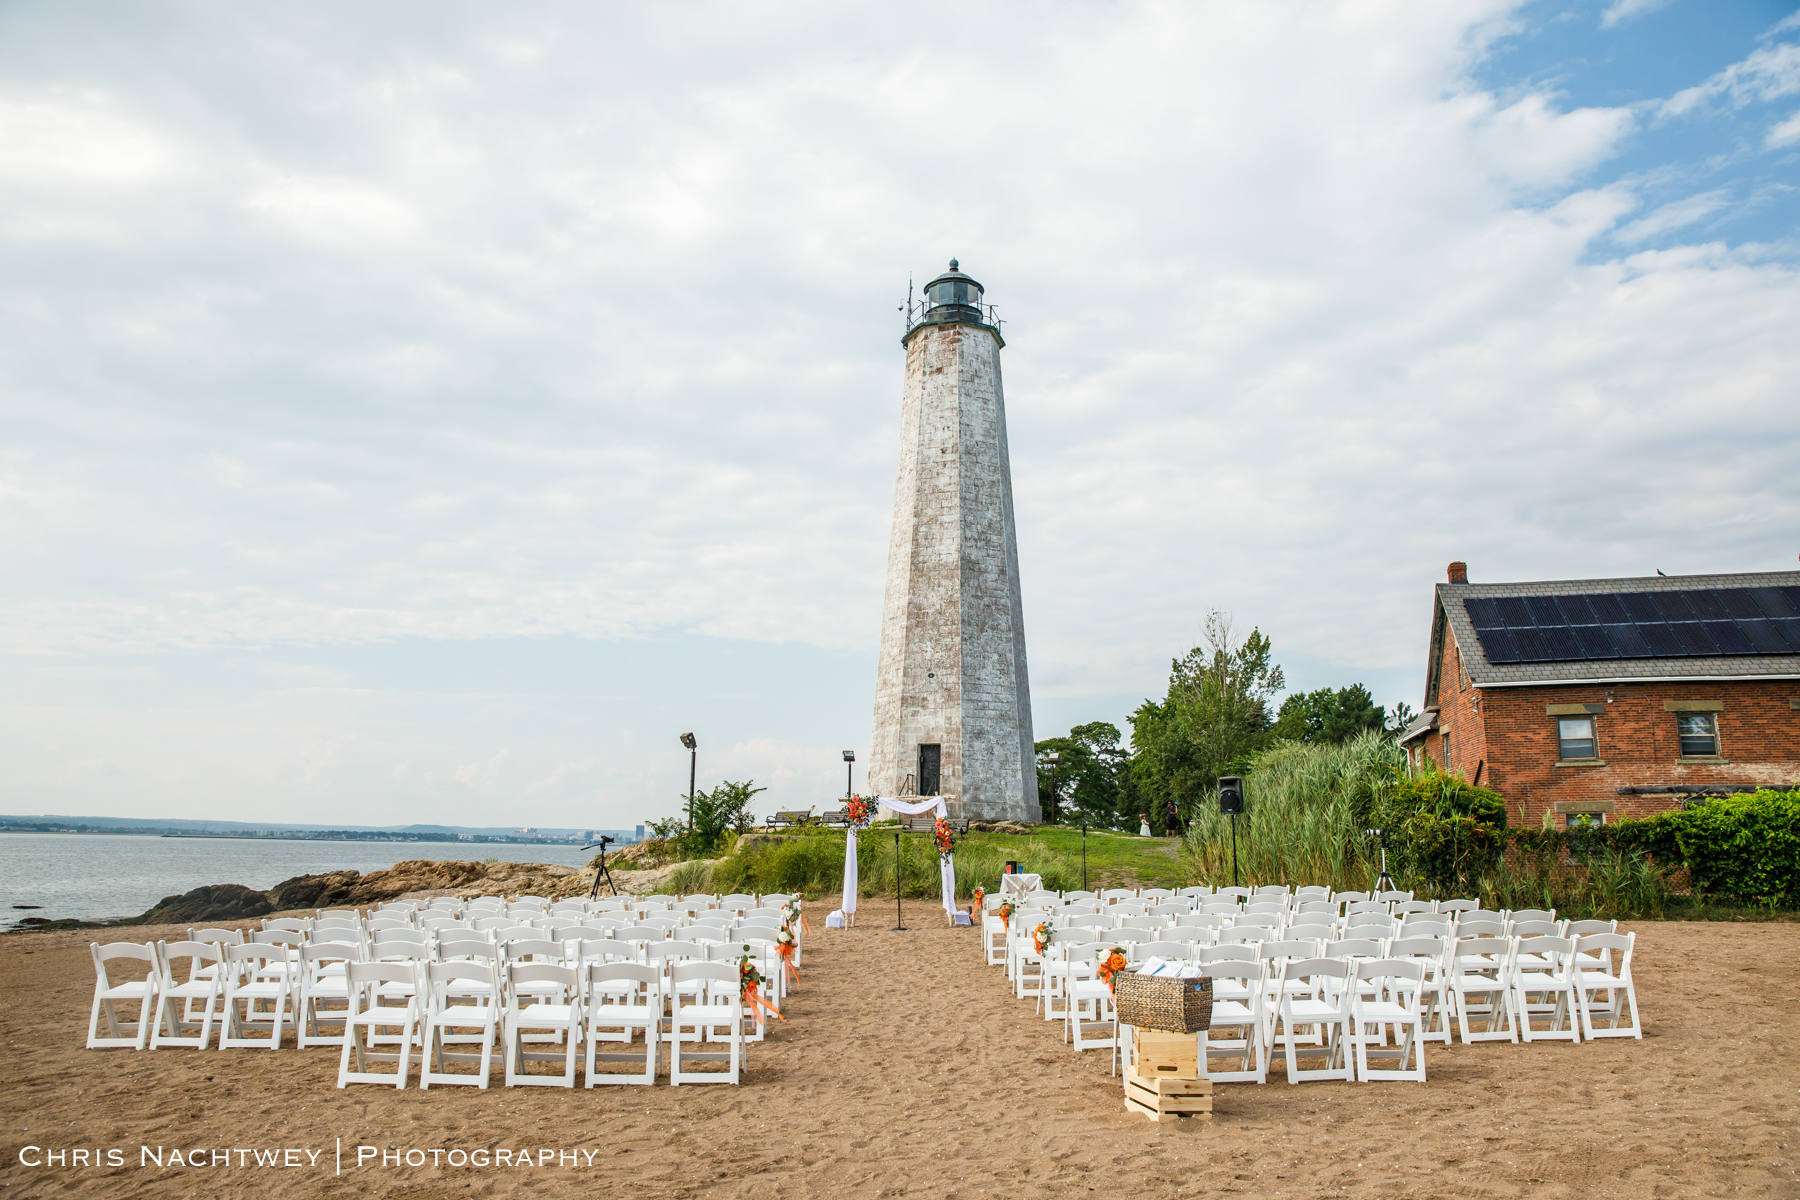 photos-wedding-lighthouse-point-park-carousel-new-haven-chris-nachtwey-photography-2019-22.jpg